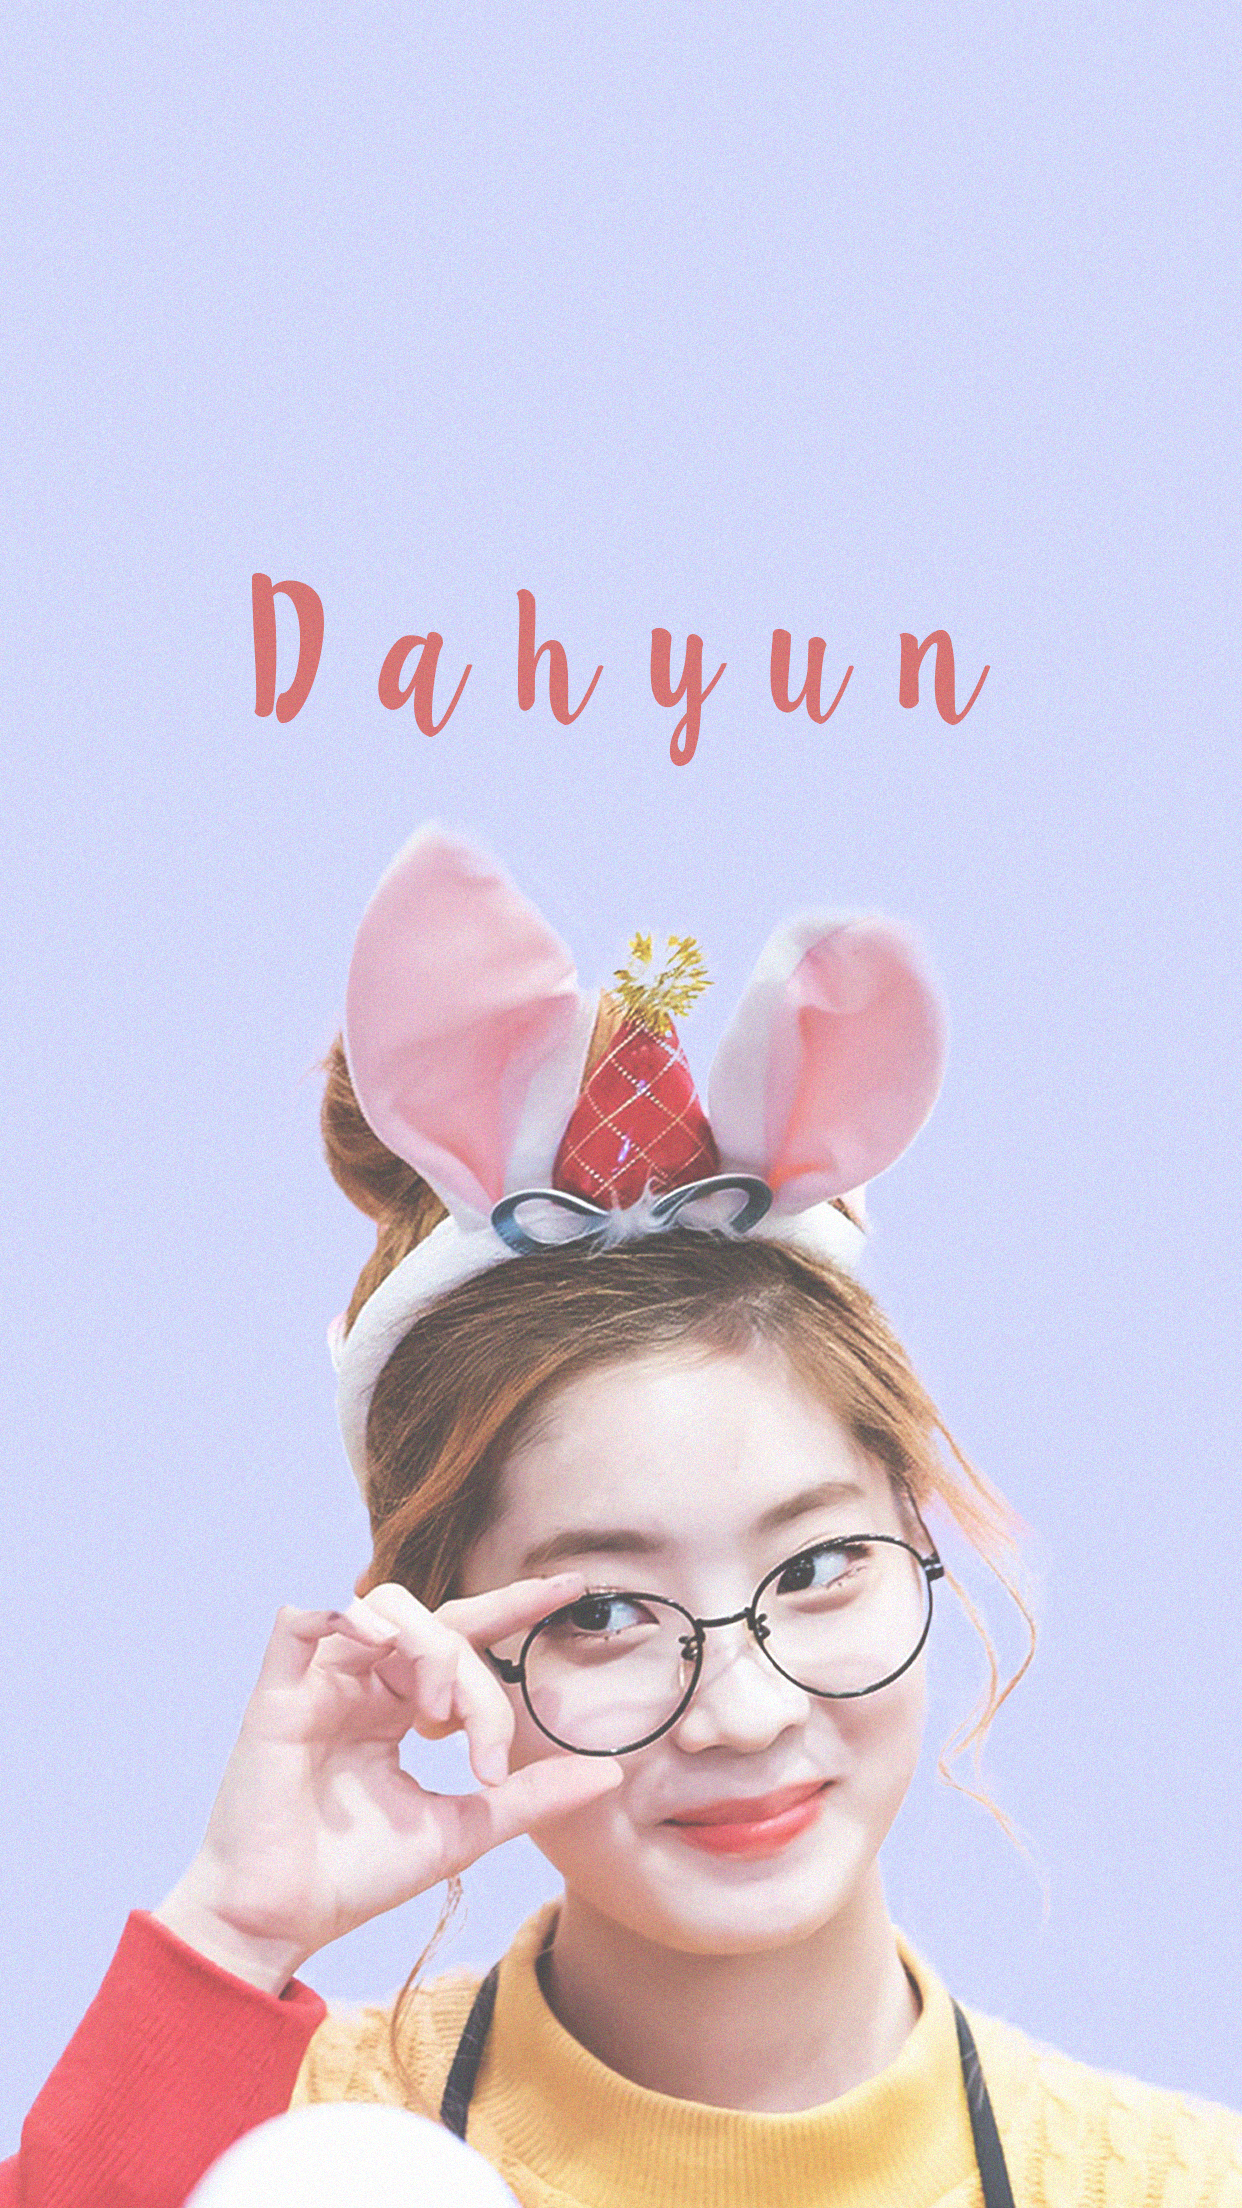 Kim Dahyun Wallpaper Kpop Twice Wallpaper Dahyun Lavender